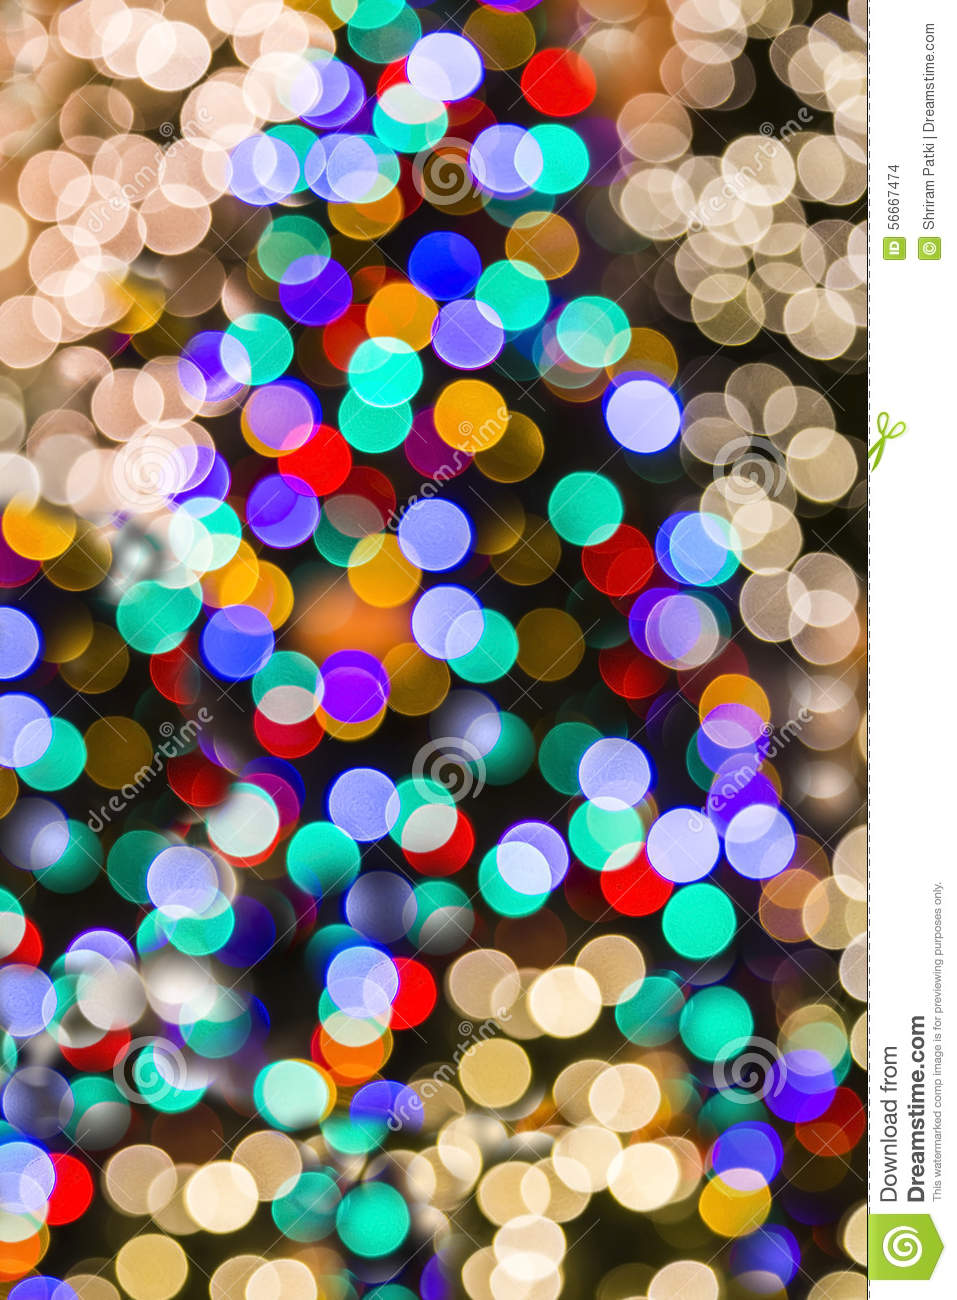 Colorful Christmas Lights Background.Vertical Christmas Lights Background Blurred Illustration